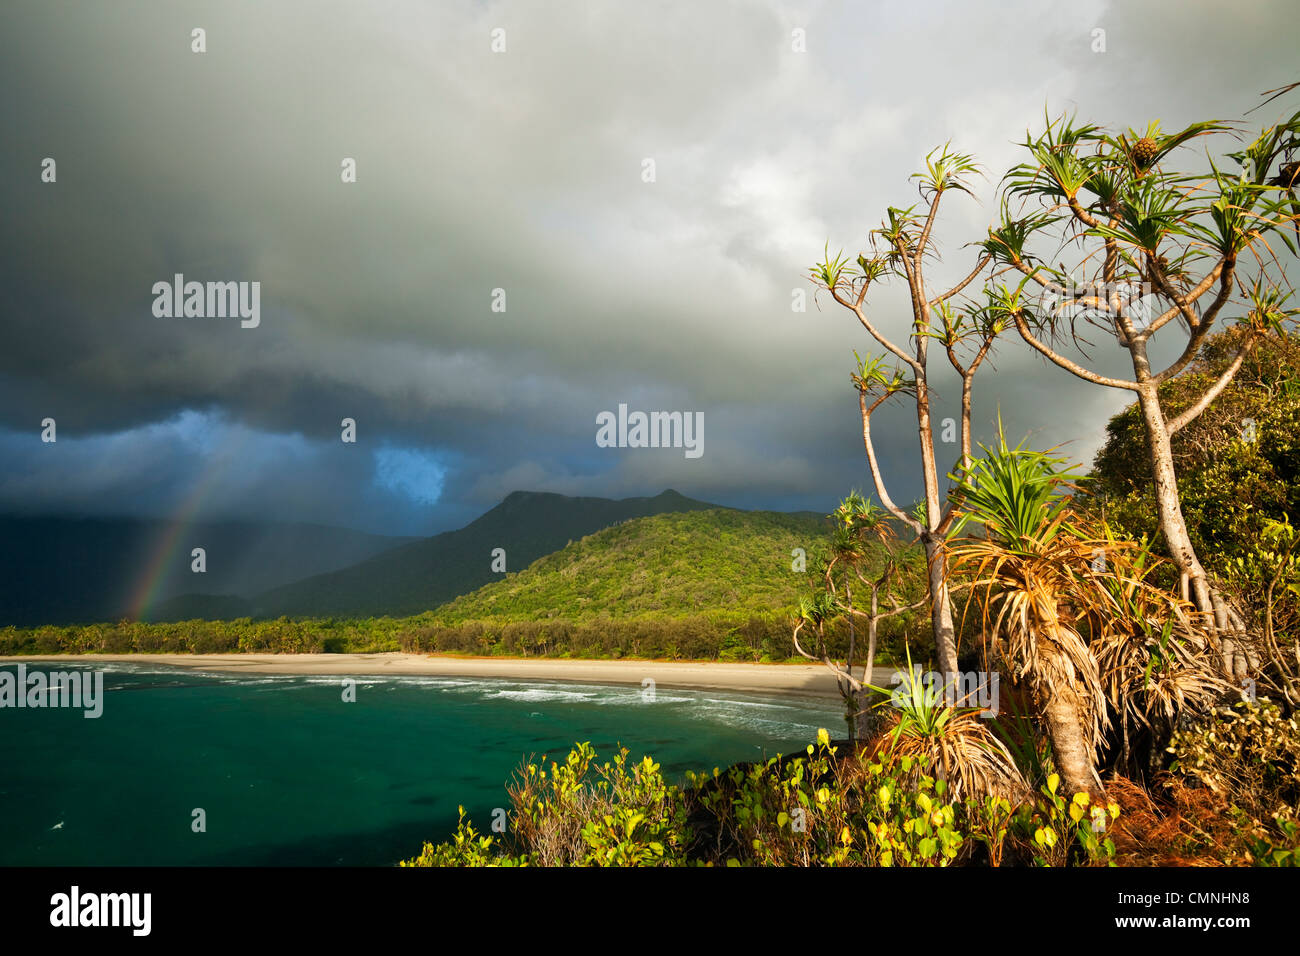 VIew of Myall Beach during morning rain storm. Cape Tribulation, Daintree National Park, Queensland, Australia Stock Photo